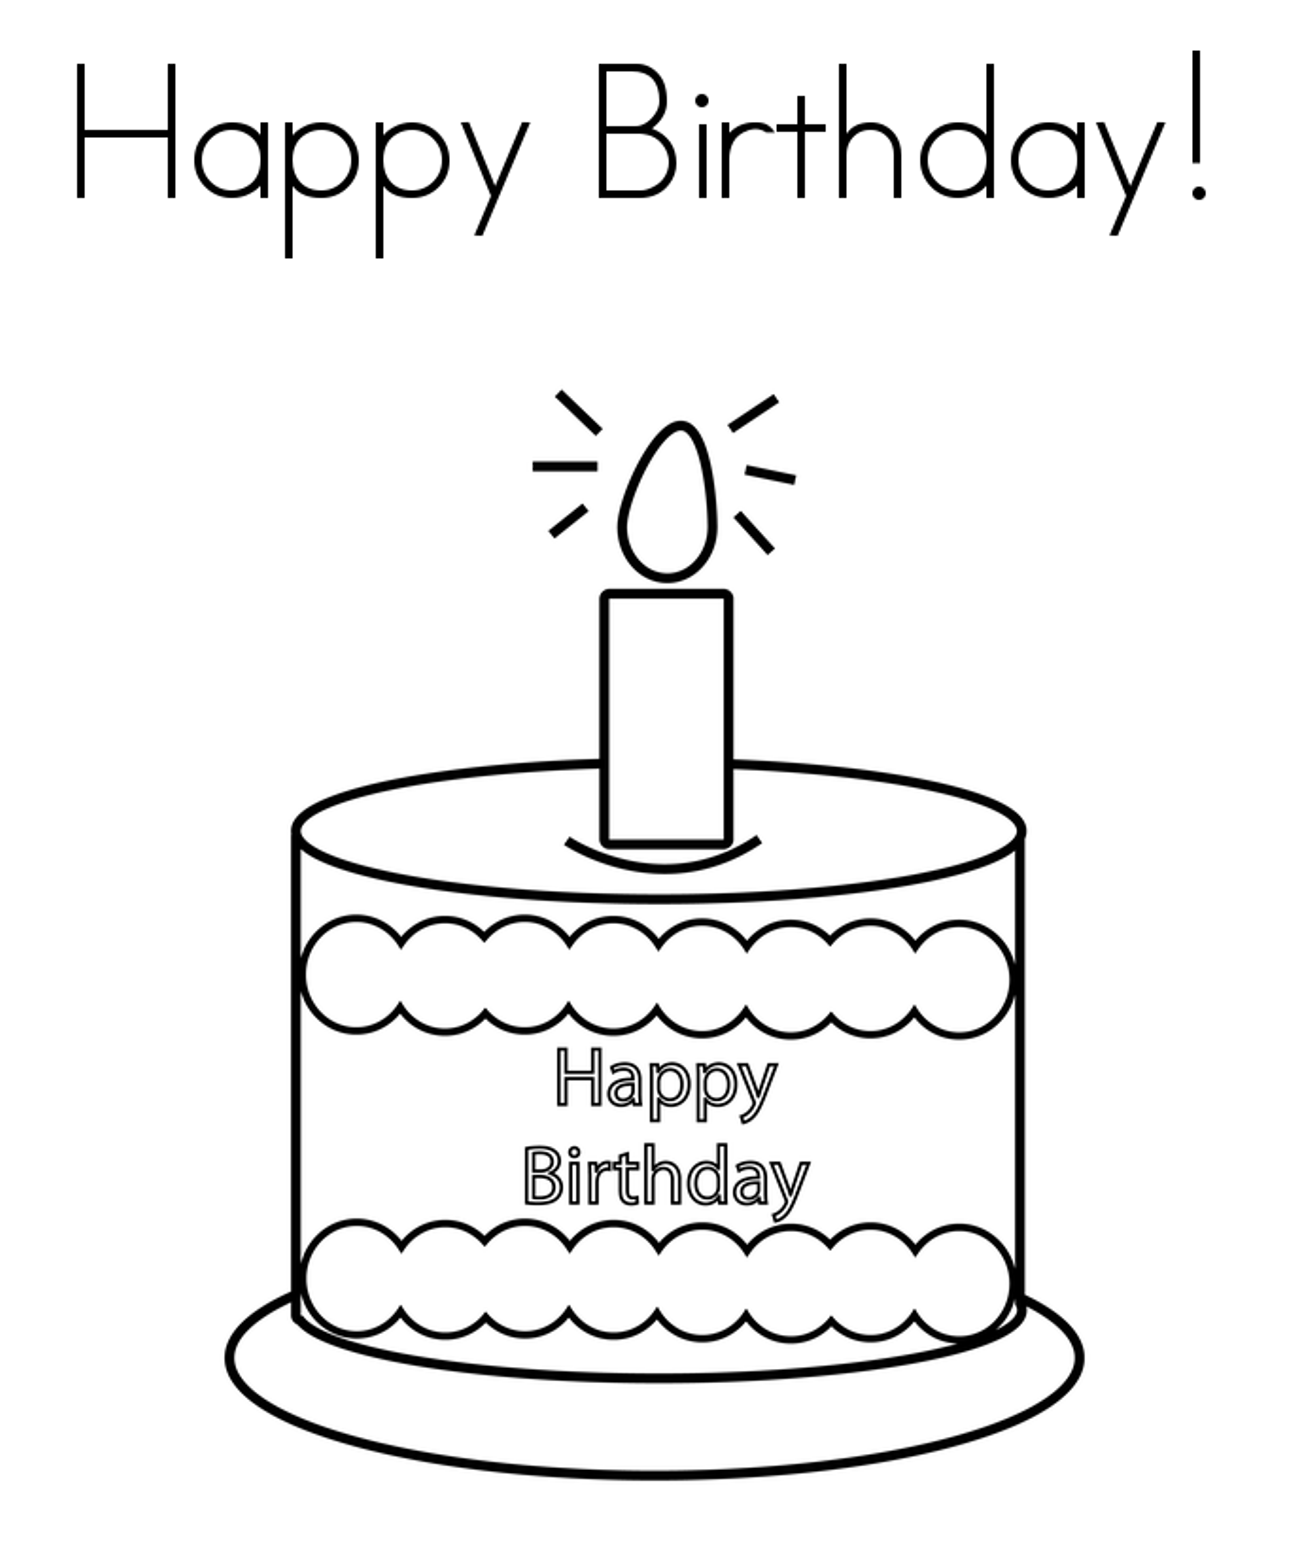 Happy Birthday Cake Coloring Pages